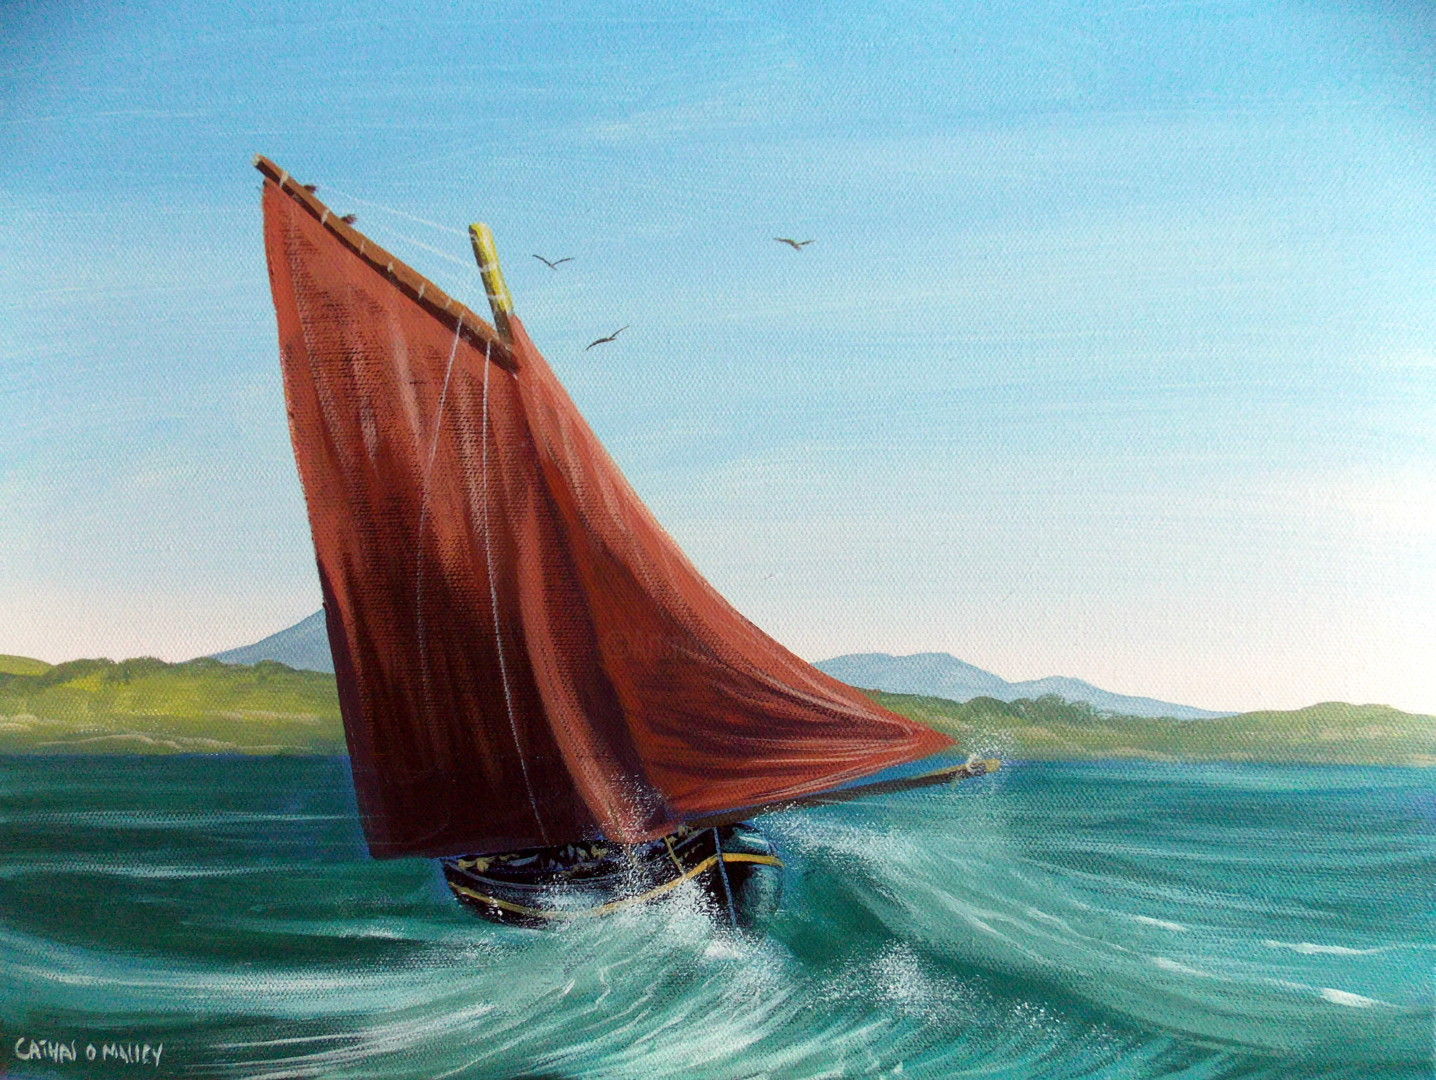 Cathal O Malley - the wave